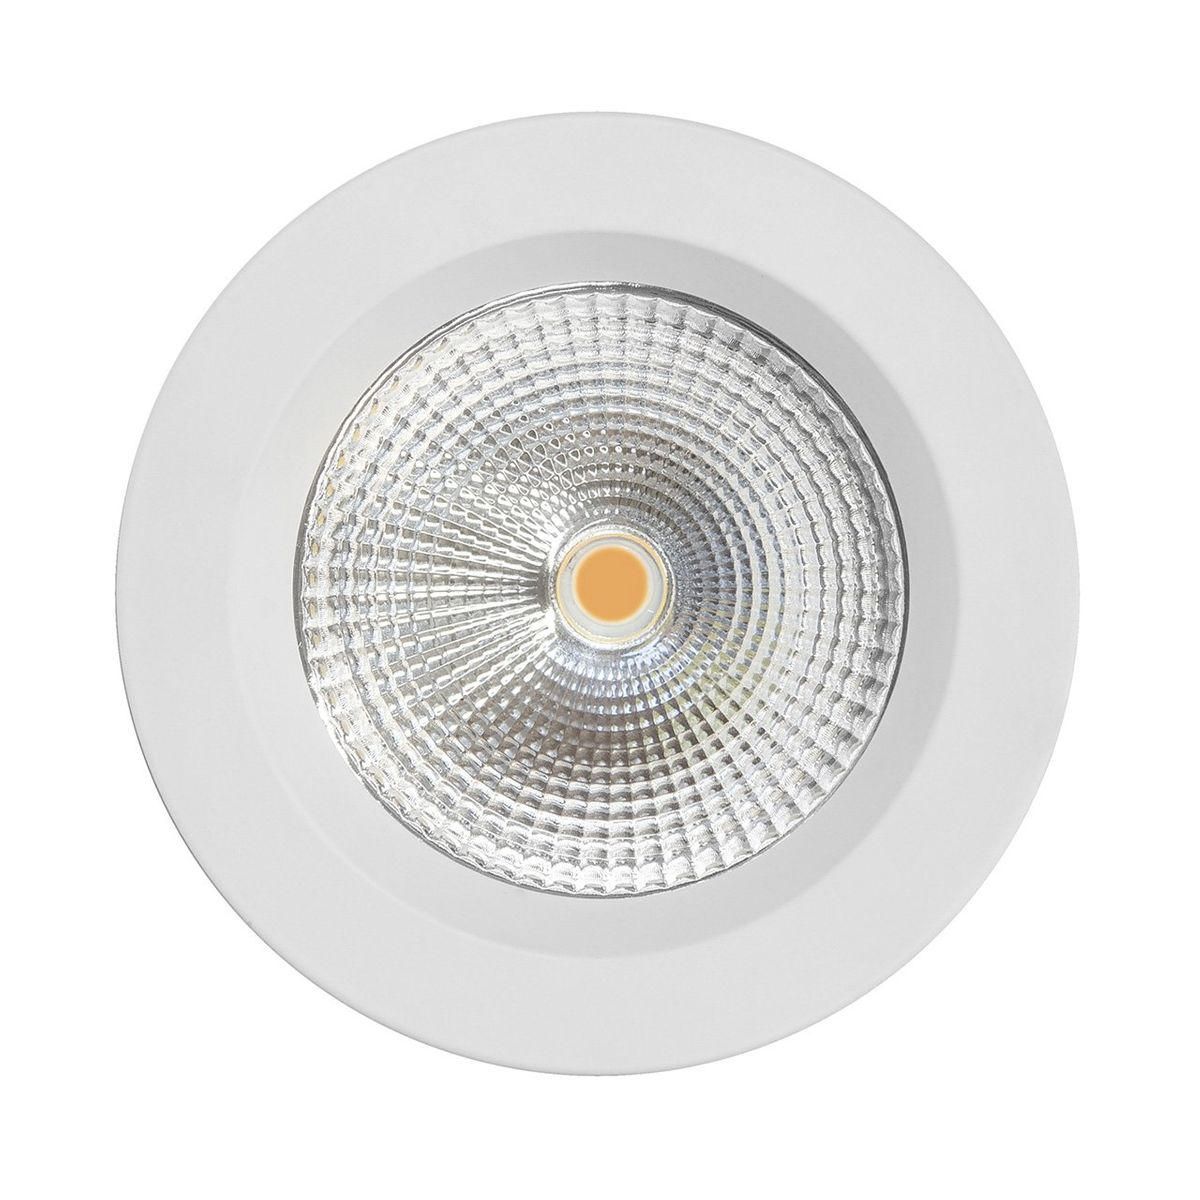 HV5530-WHT - ORA White Fixed LED Downlight – Bild 3